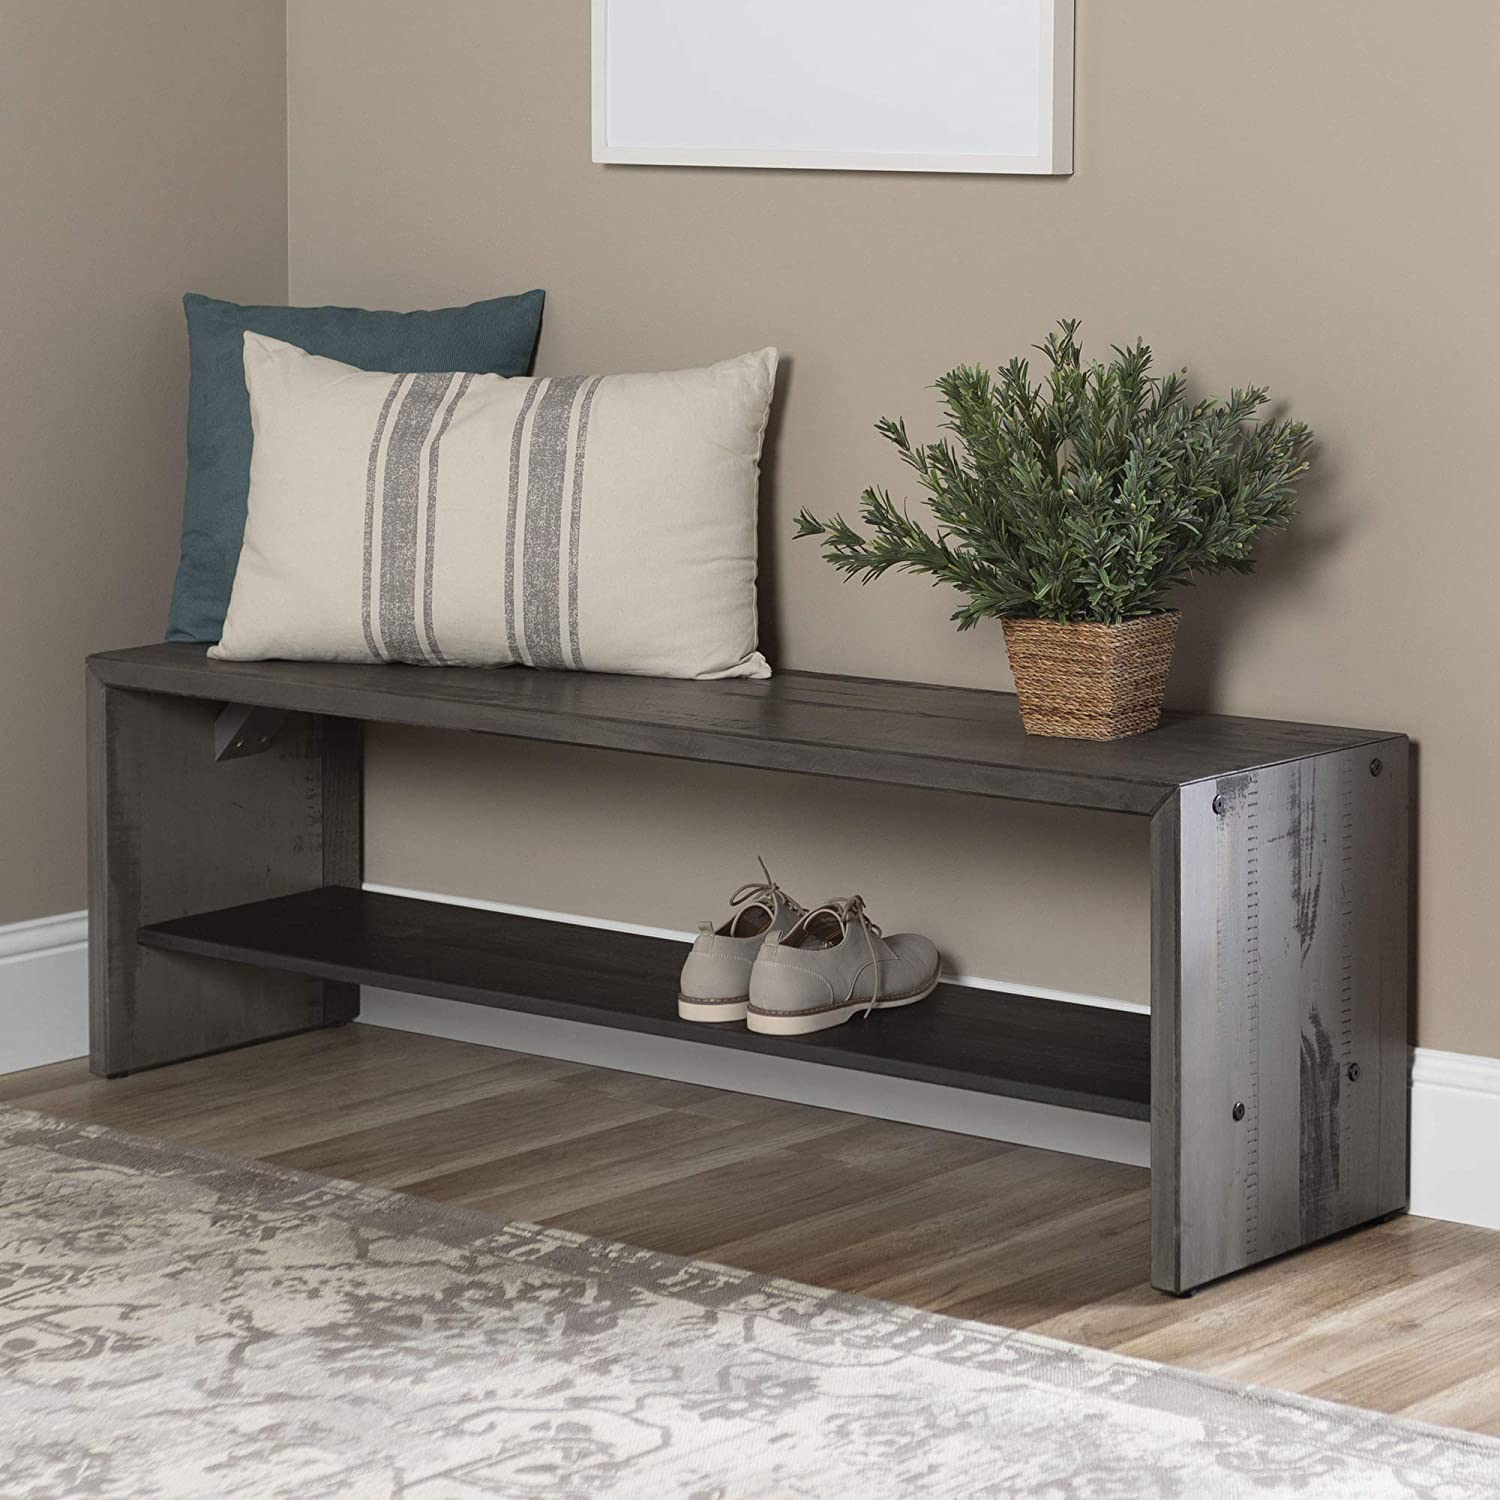 WE Furniture AZ58ALPGY Rustic Solid Wood Entryway Dining Bench, 58 Inch, Grey